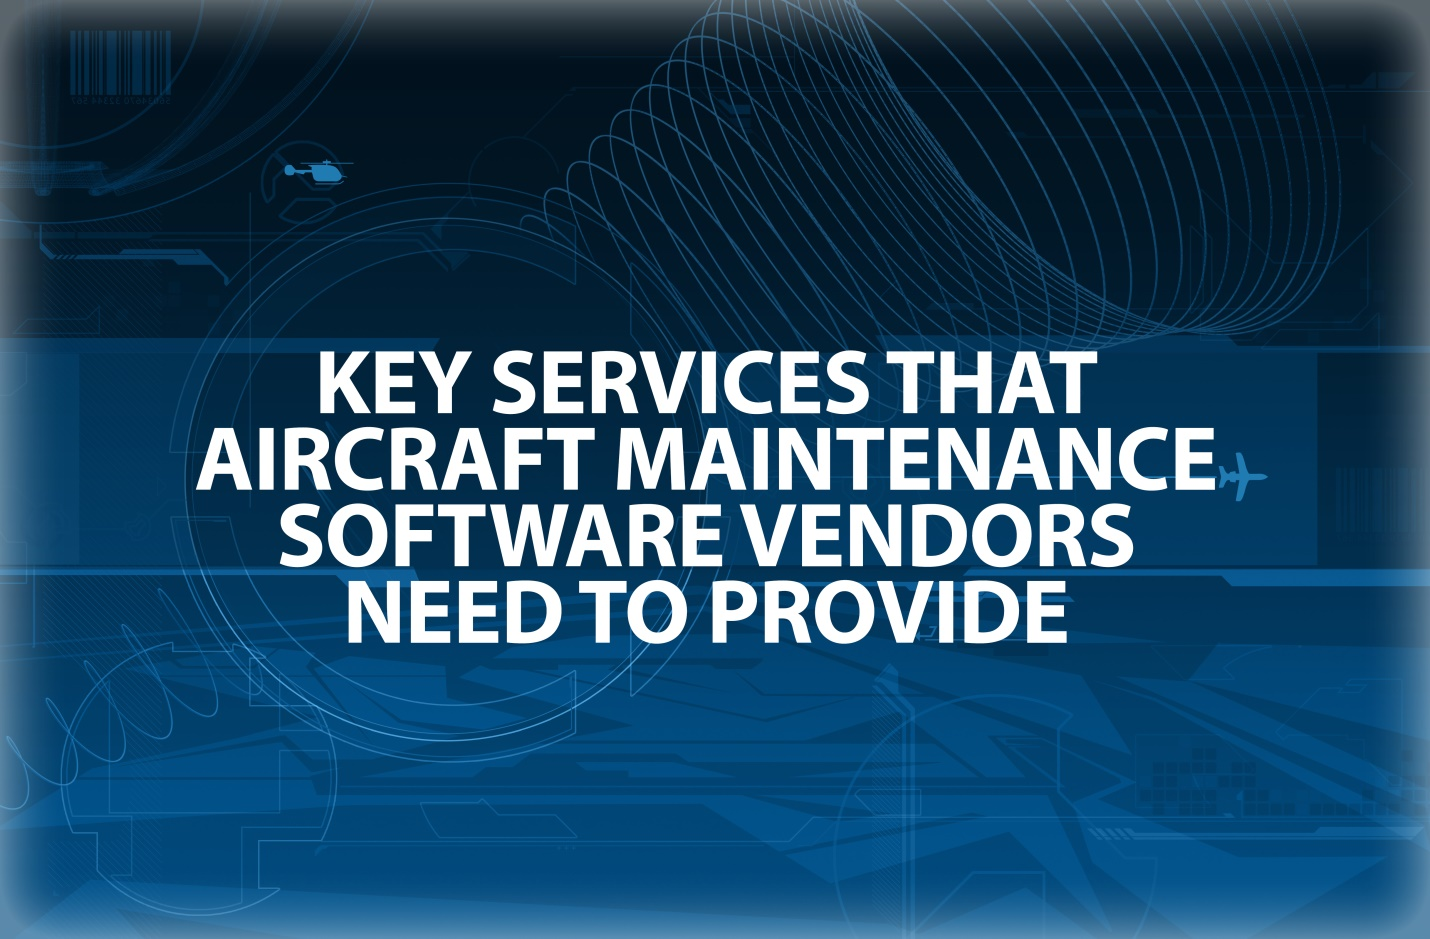 Key Services that Aircraft Maintenance Software Vendors Need to Provide blog post image